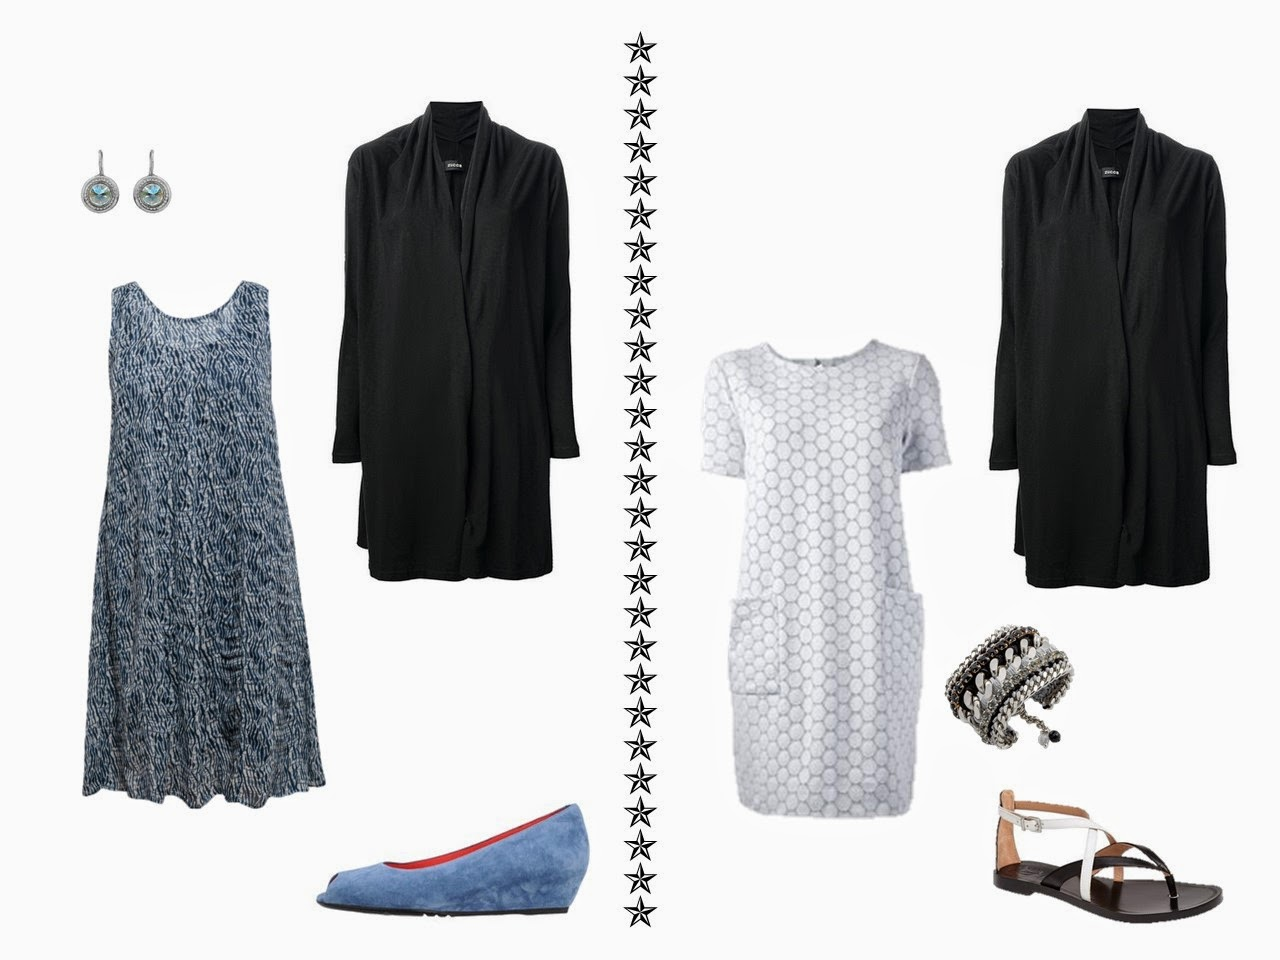 black cardigan with a blue print sleeveless dress, and with a white eyelet lace dress